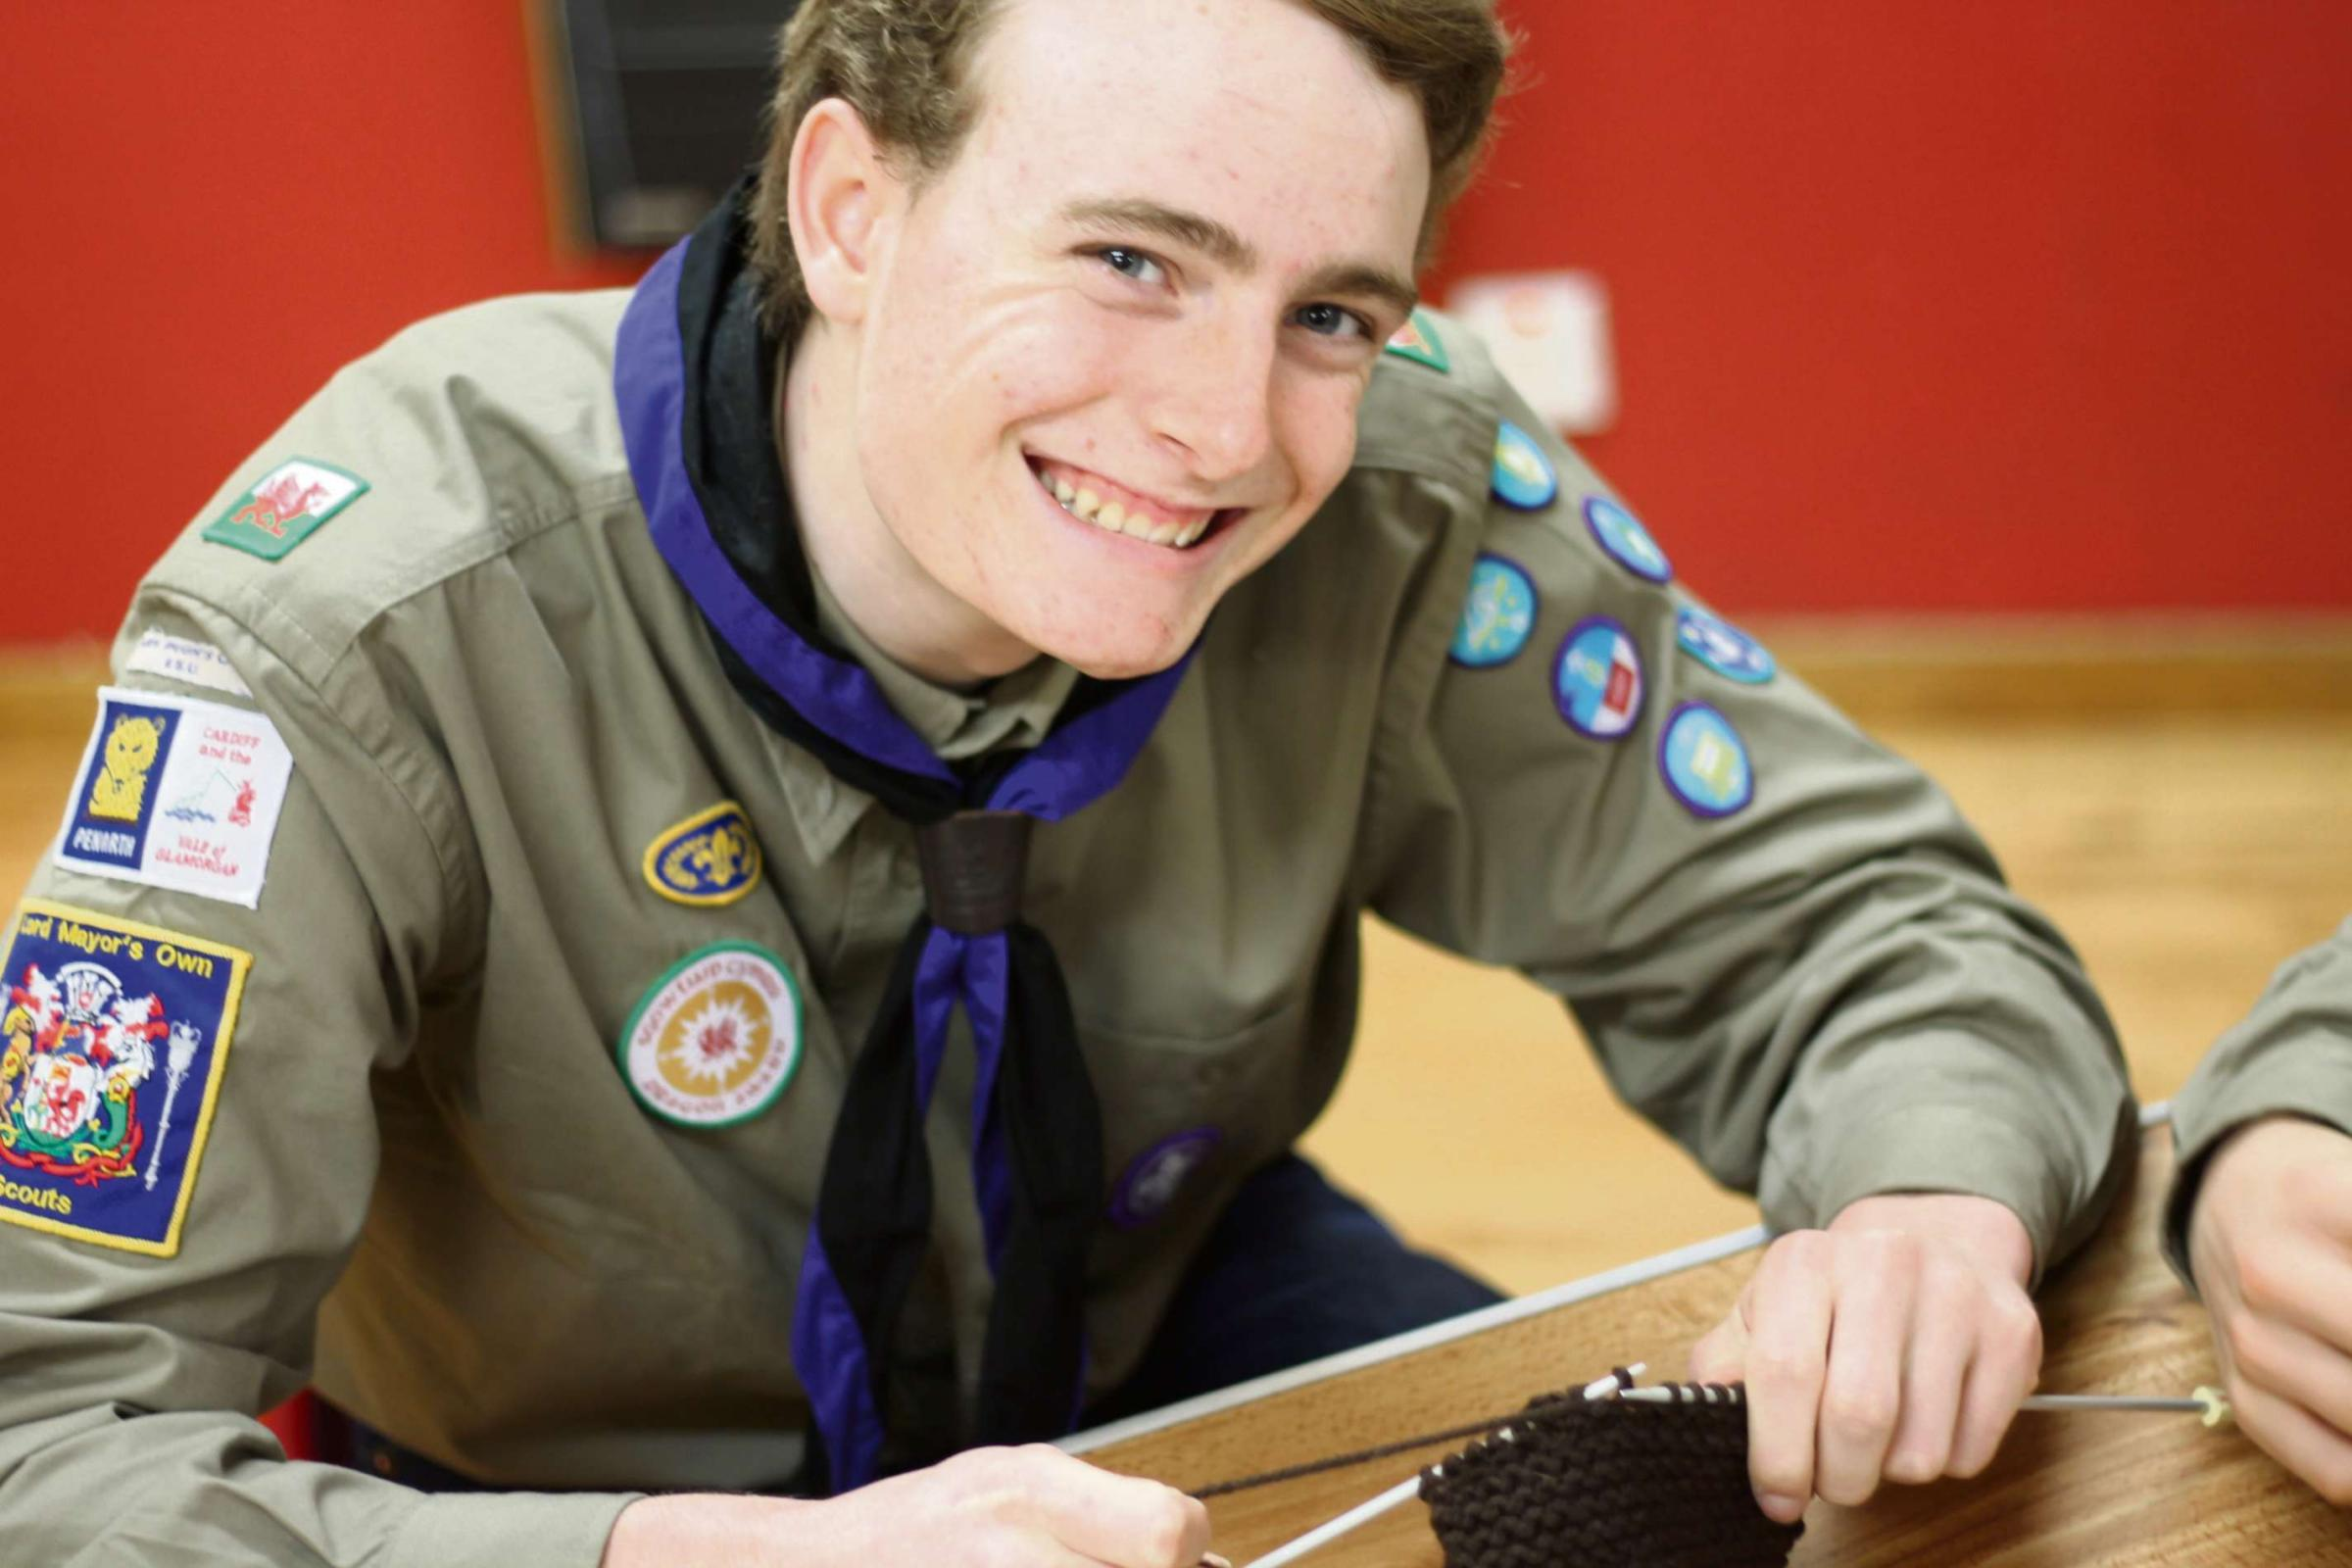 CHALLENGE: An Explorer Scout learning to knit (4481610)